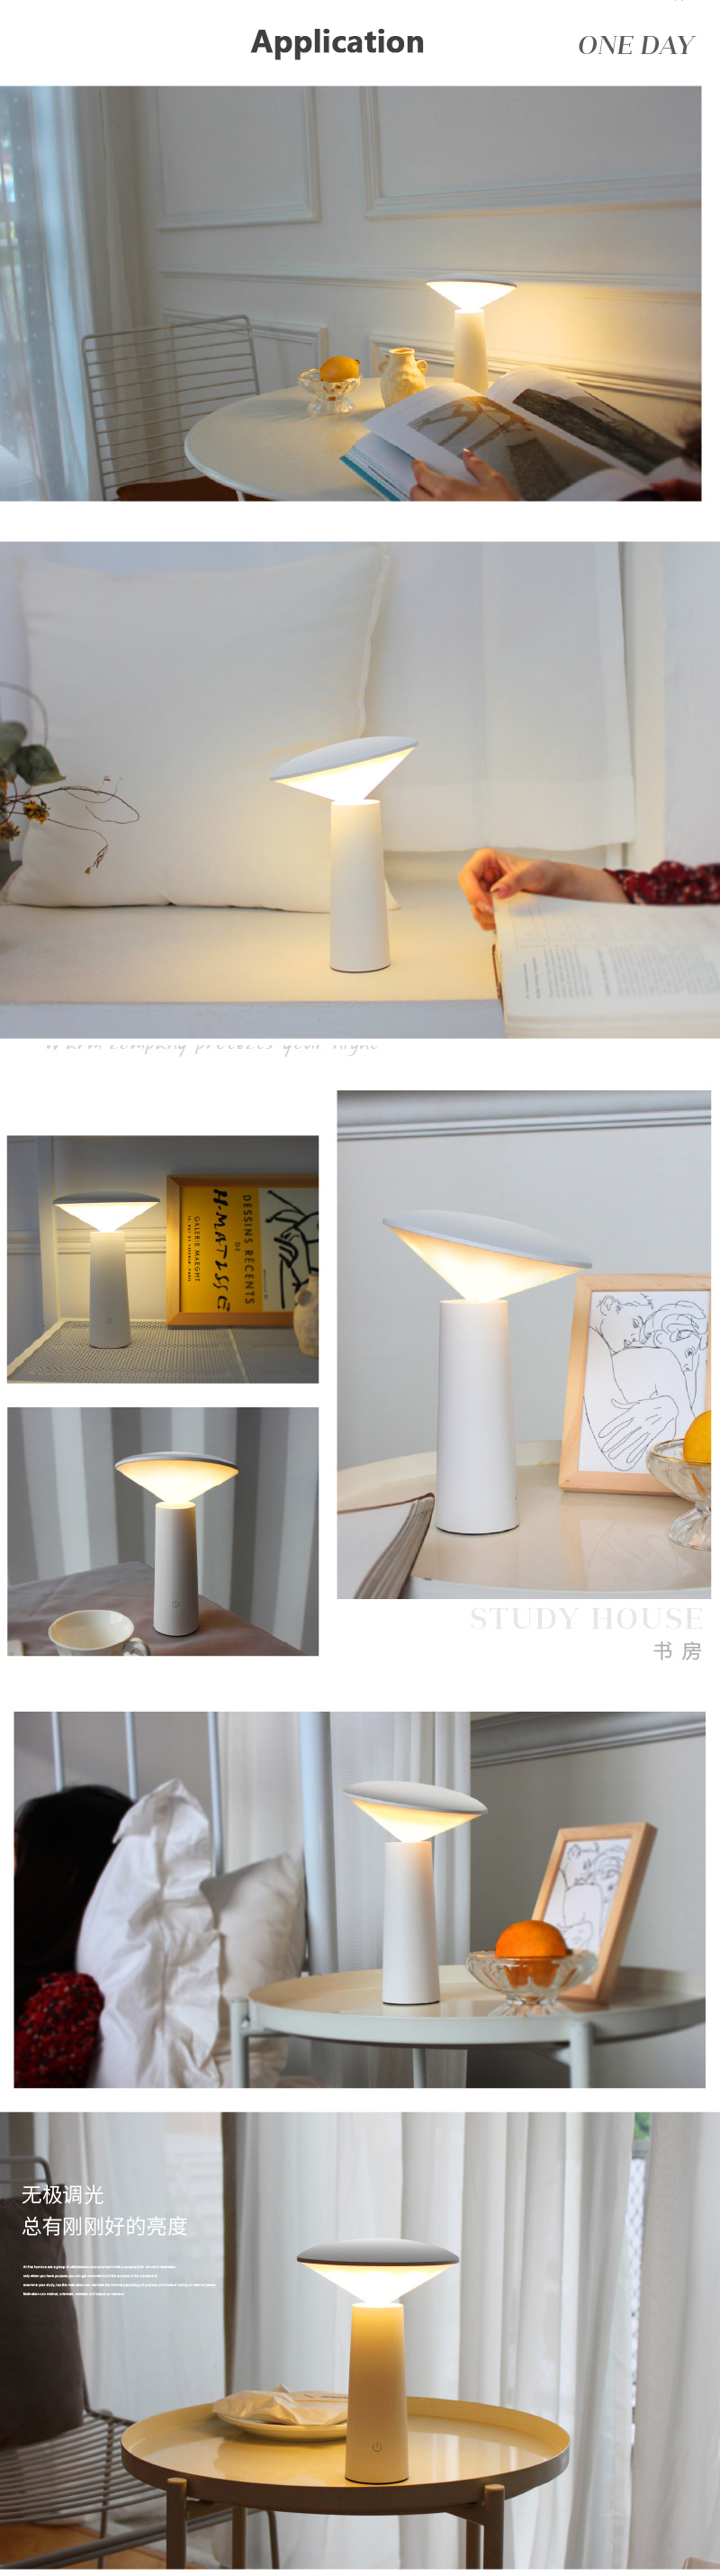 Rechargeable lithium battery operated led desk lamp mini night light table lamp with color temperature and brightness adjustable